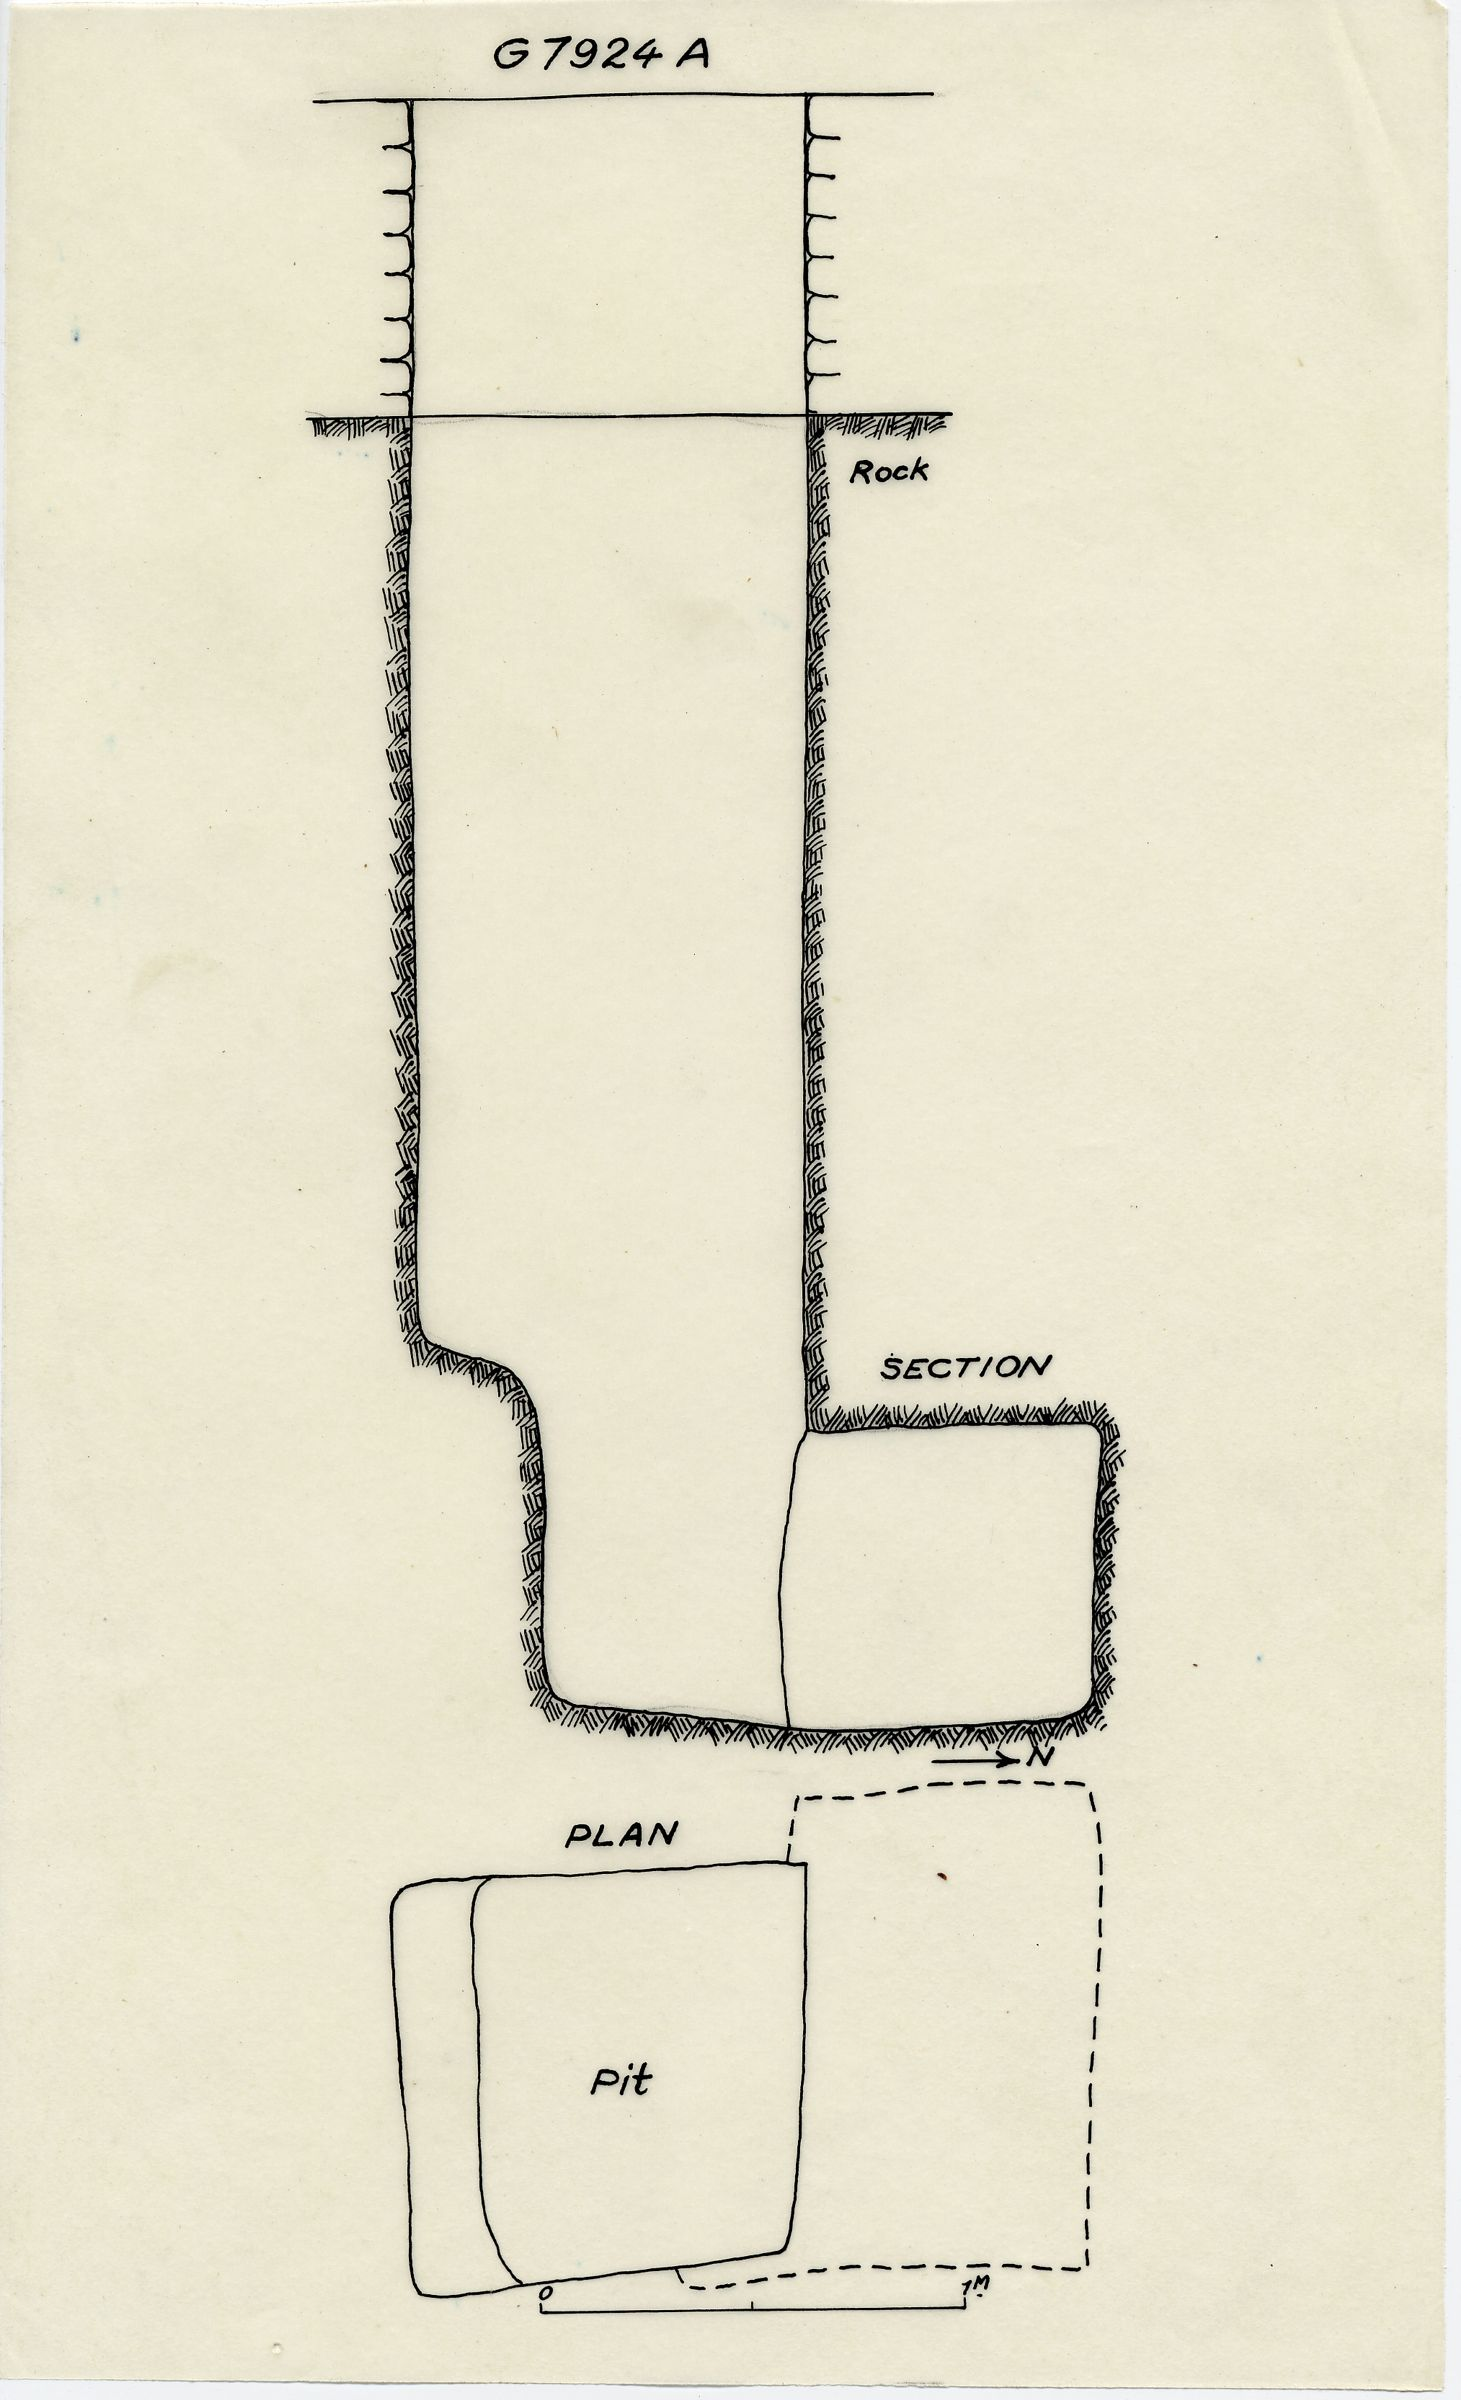 Maps and plans: G 7924b, Shaft A